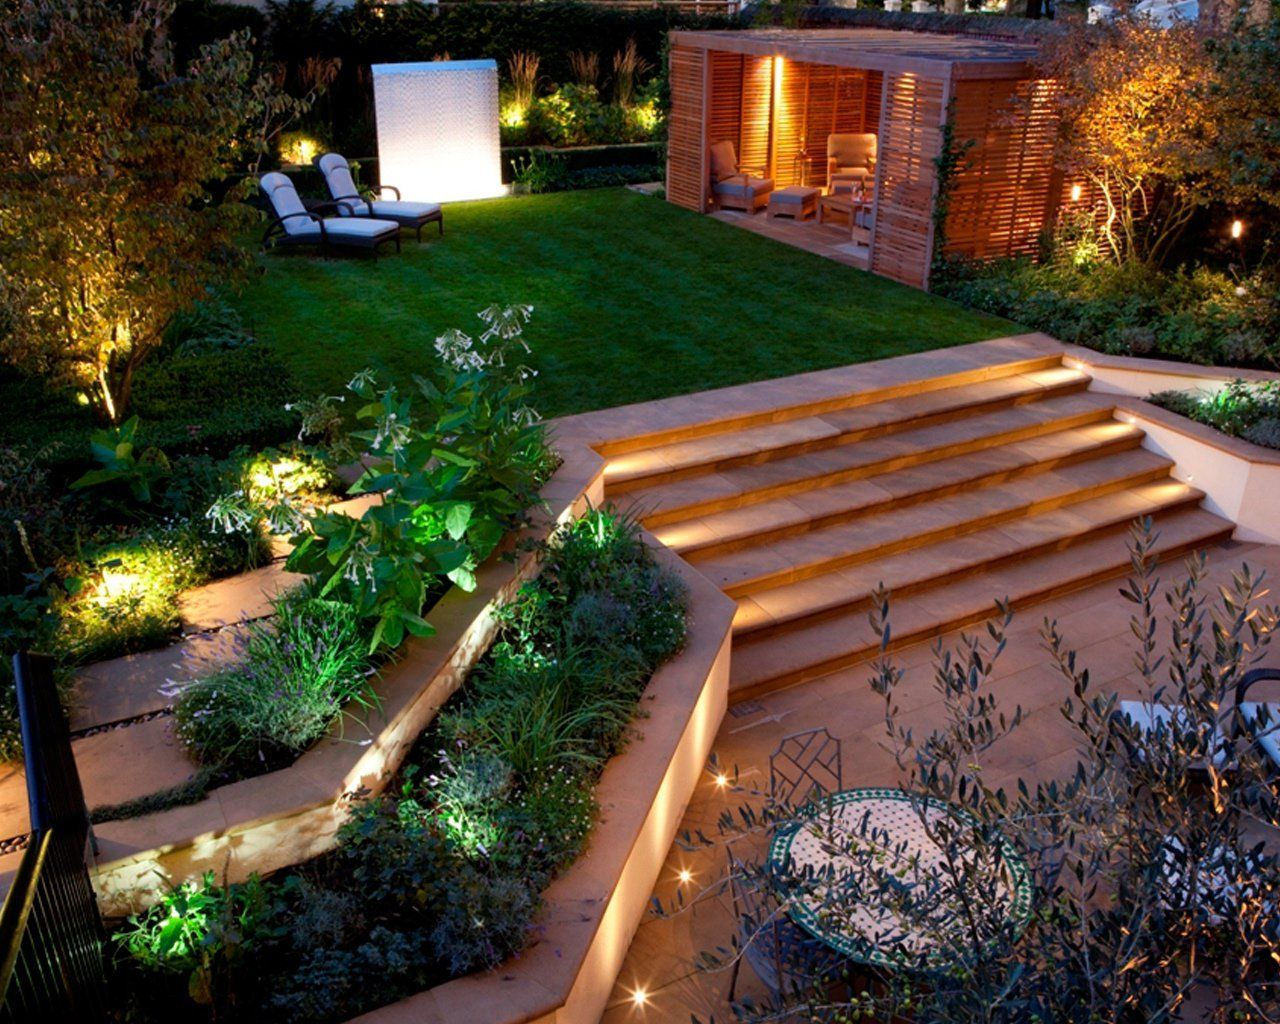 Design Your Own Garden Lounge The Green Living Room In Your Own Garden Front Garden Design Modern Garden Design Modern Garden